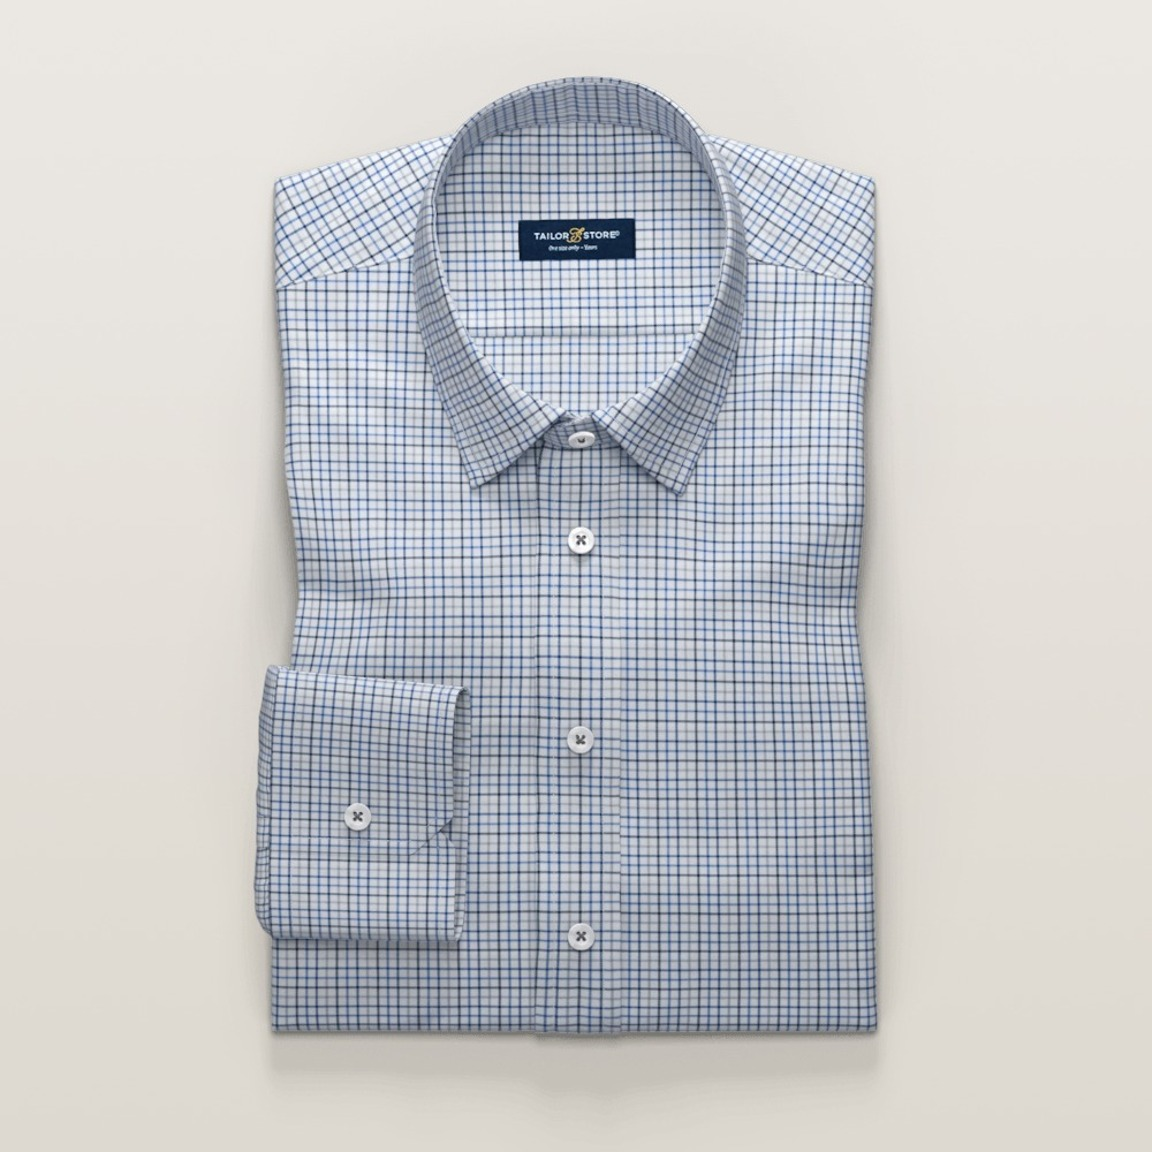 Checkered business shirt in gray and blue